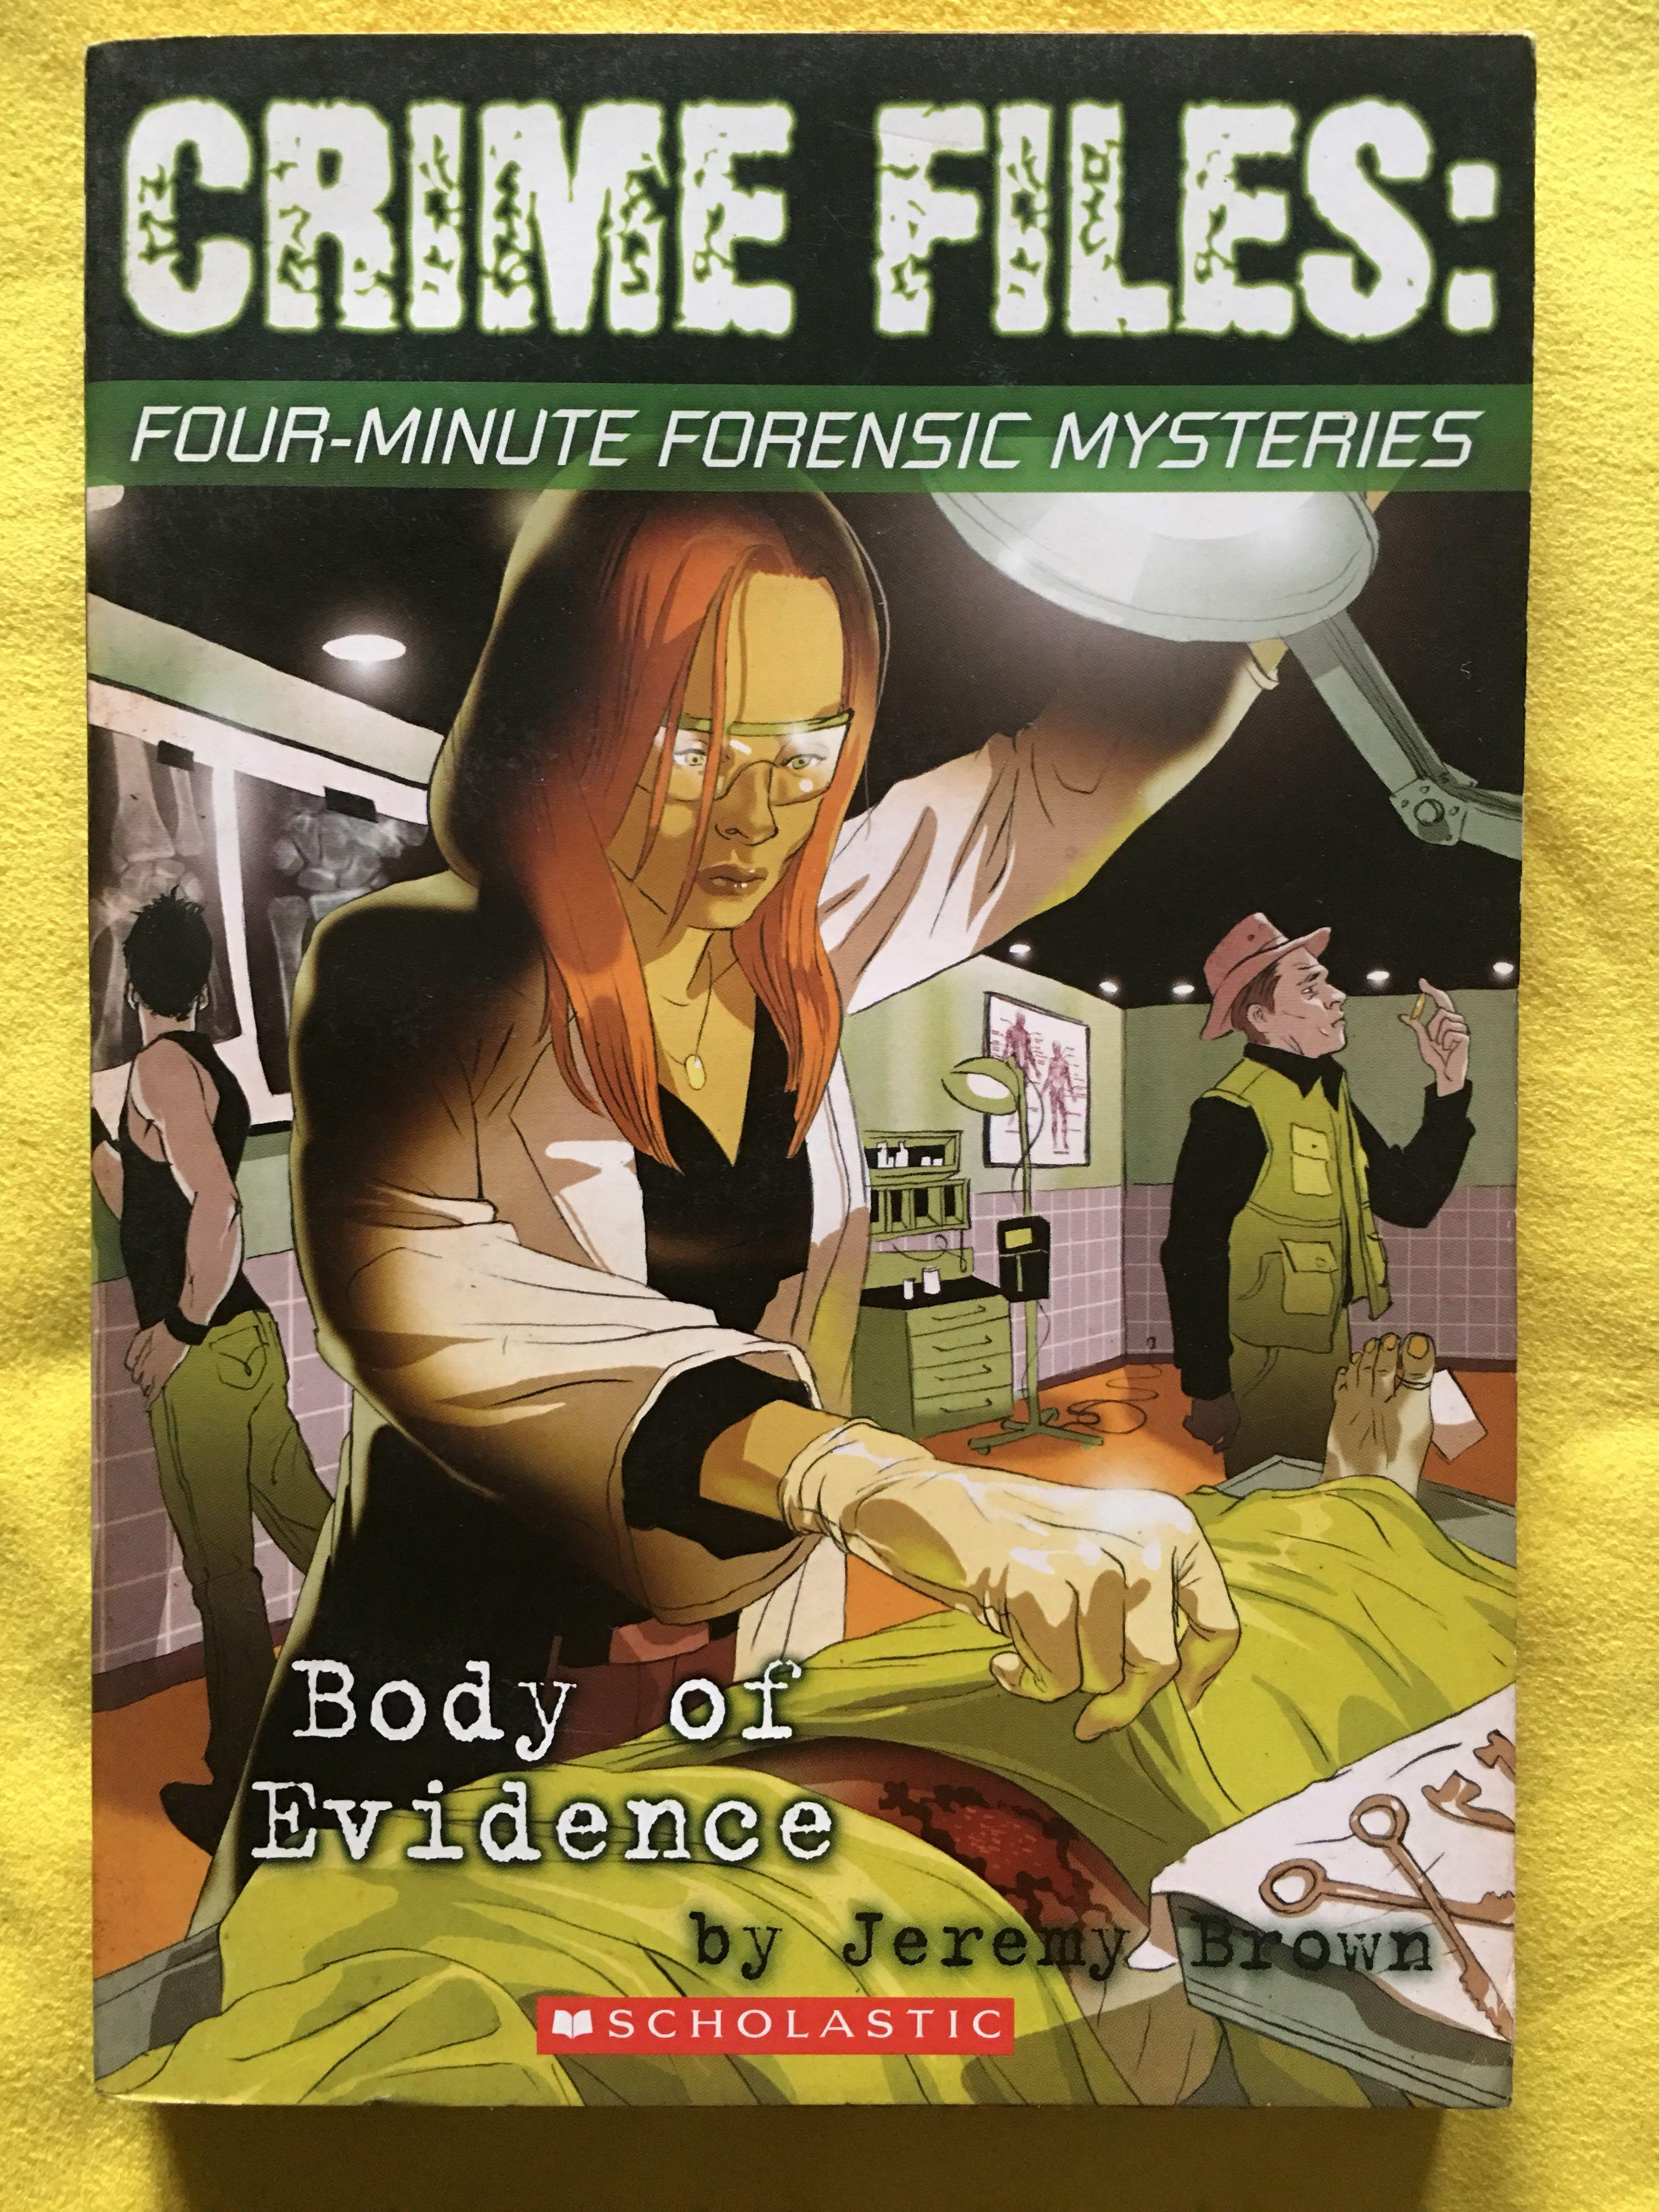 Crime Files: Four Minute Forensic Mysteries - Body of Evidence - Jeremy Brown - Scholastic - Preloved